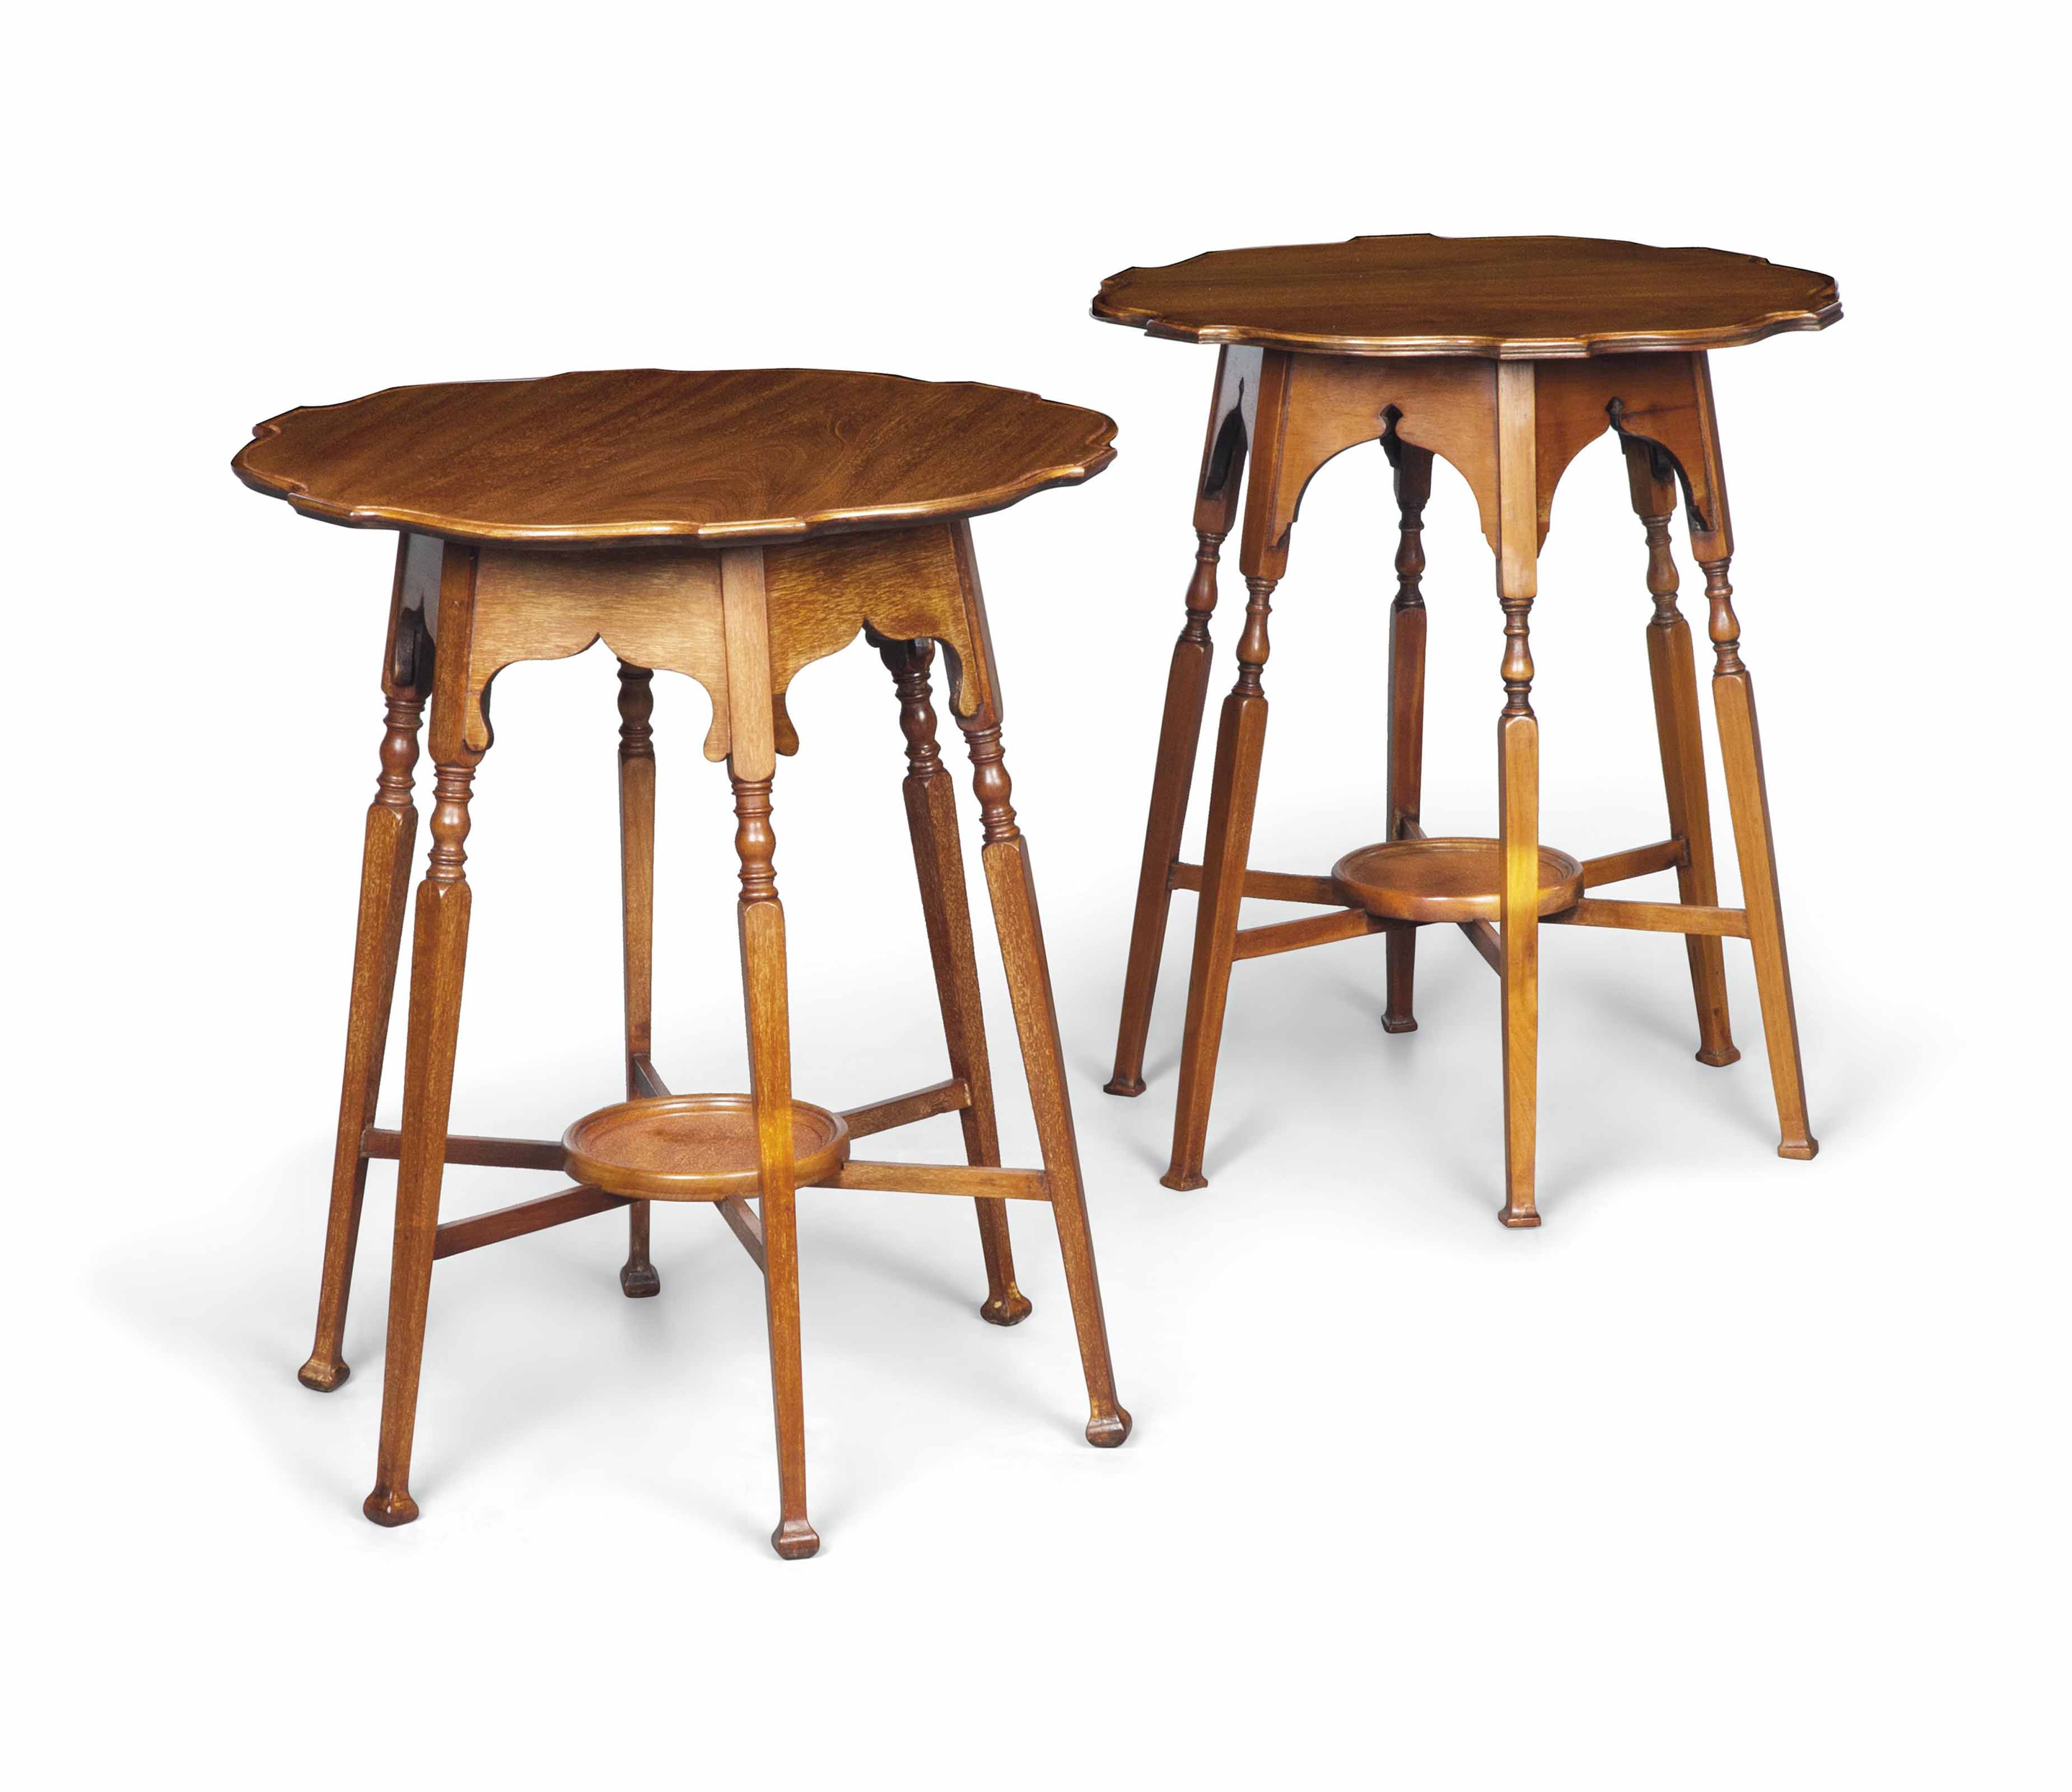 A MATCHED PAIR OF LATE VICTORIAN MAHOGANY OCCASIONAL TABLES